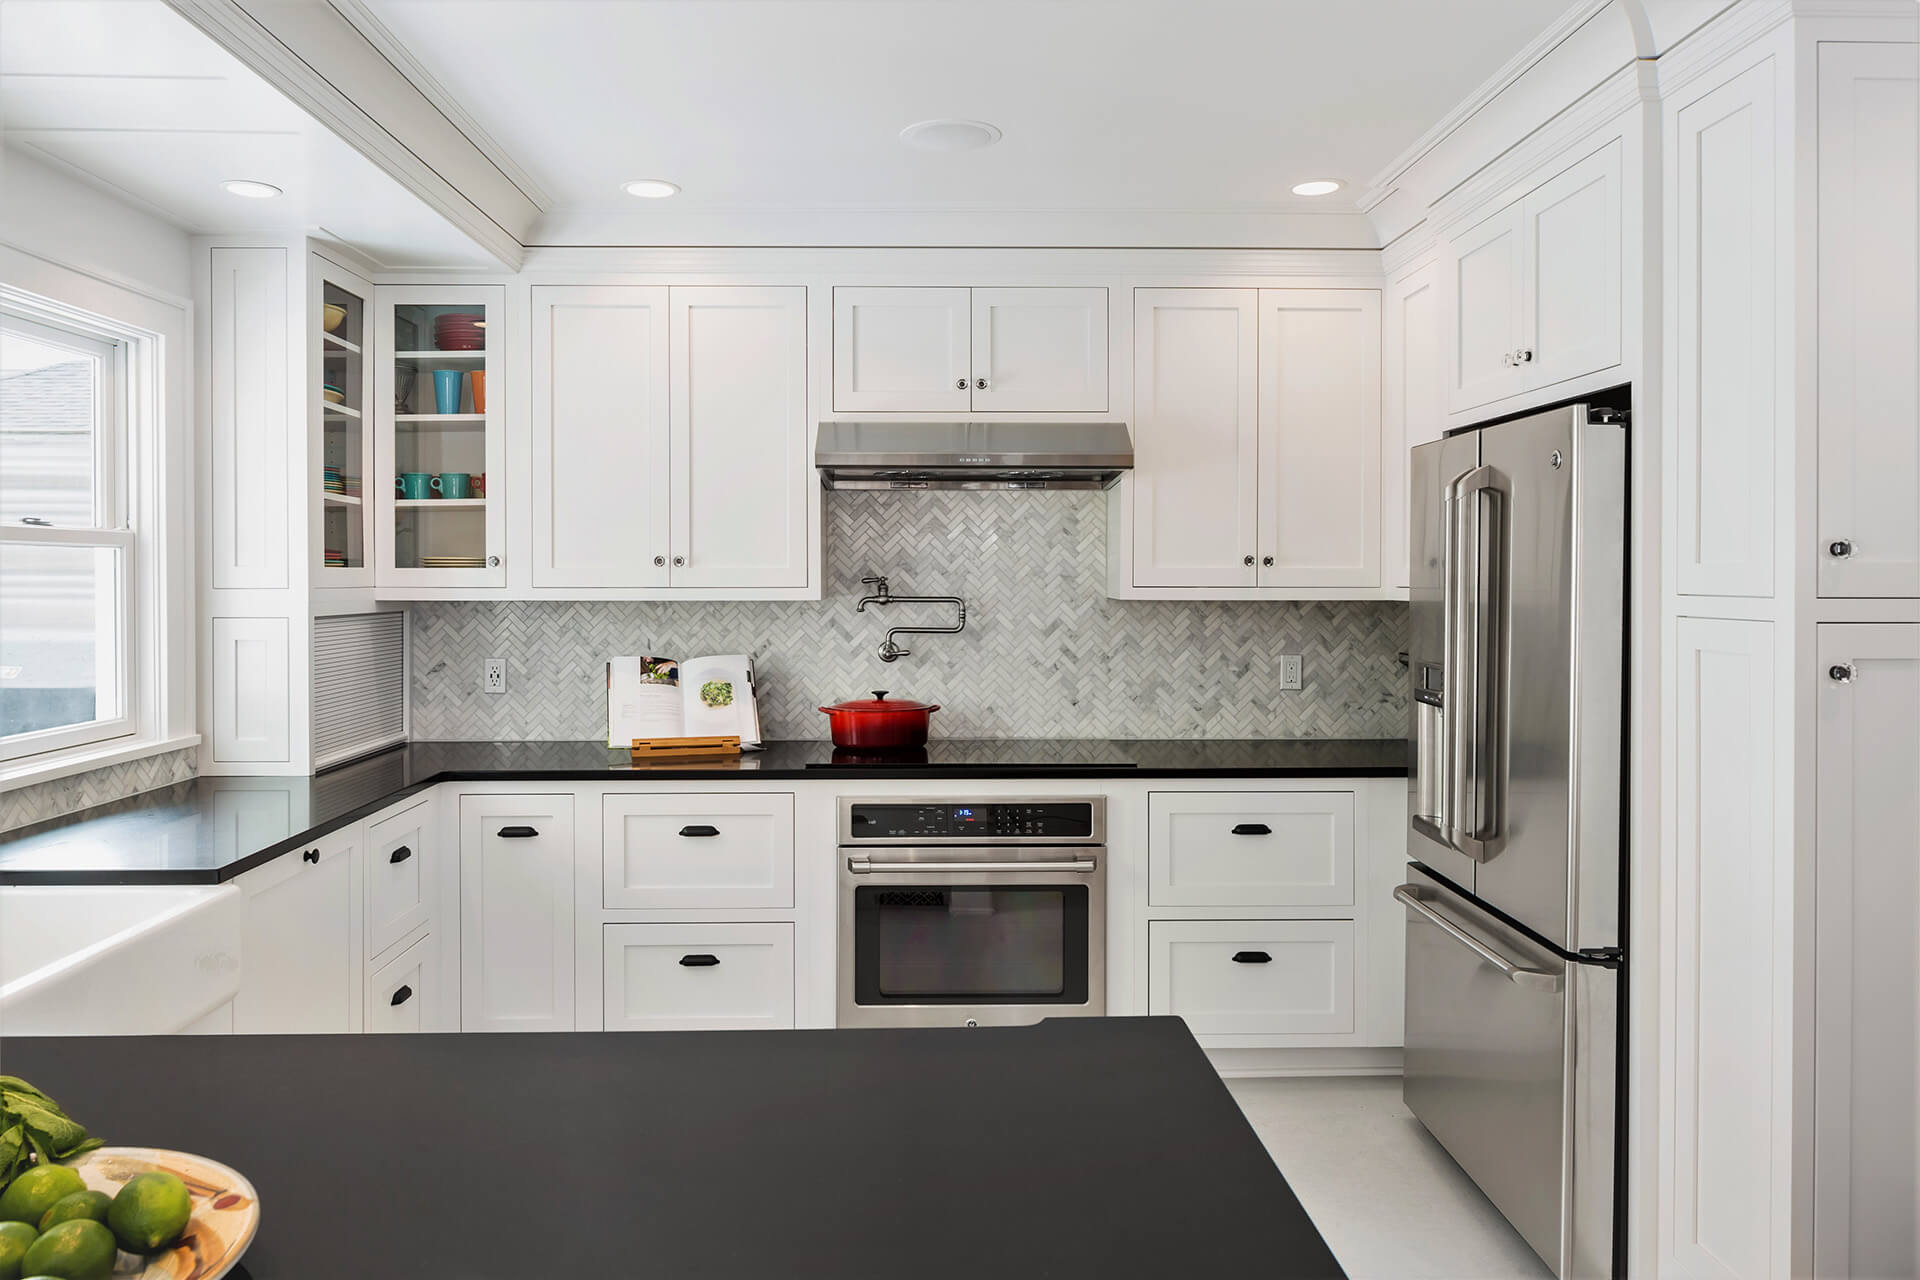 A newly remodeled kitchen by Heartwood Builders